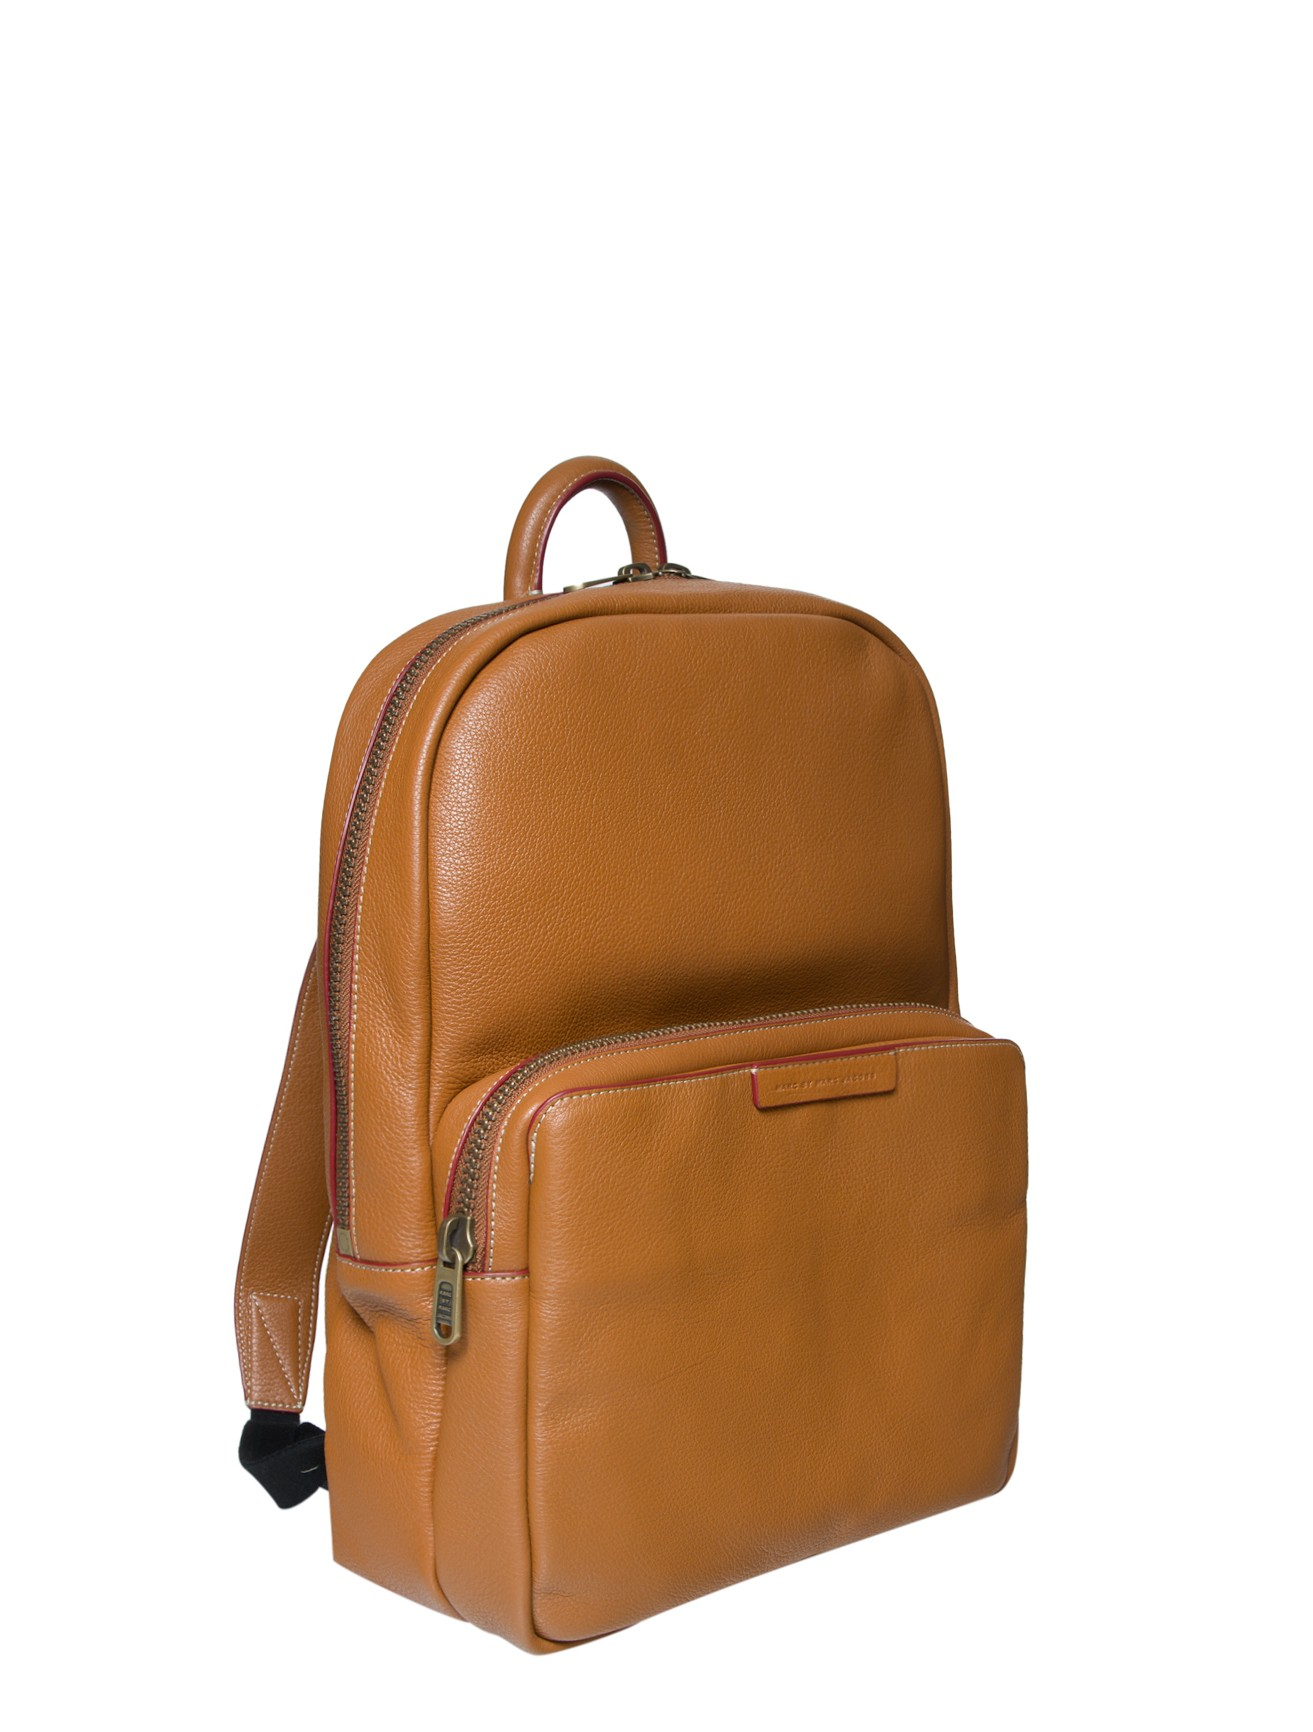 Brown leather backpack – Trend models of bags photo blog